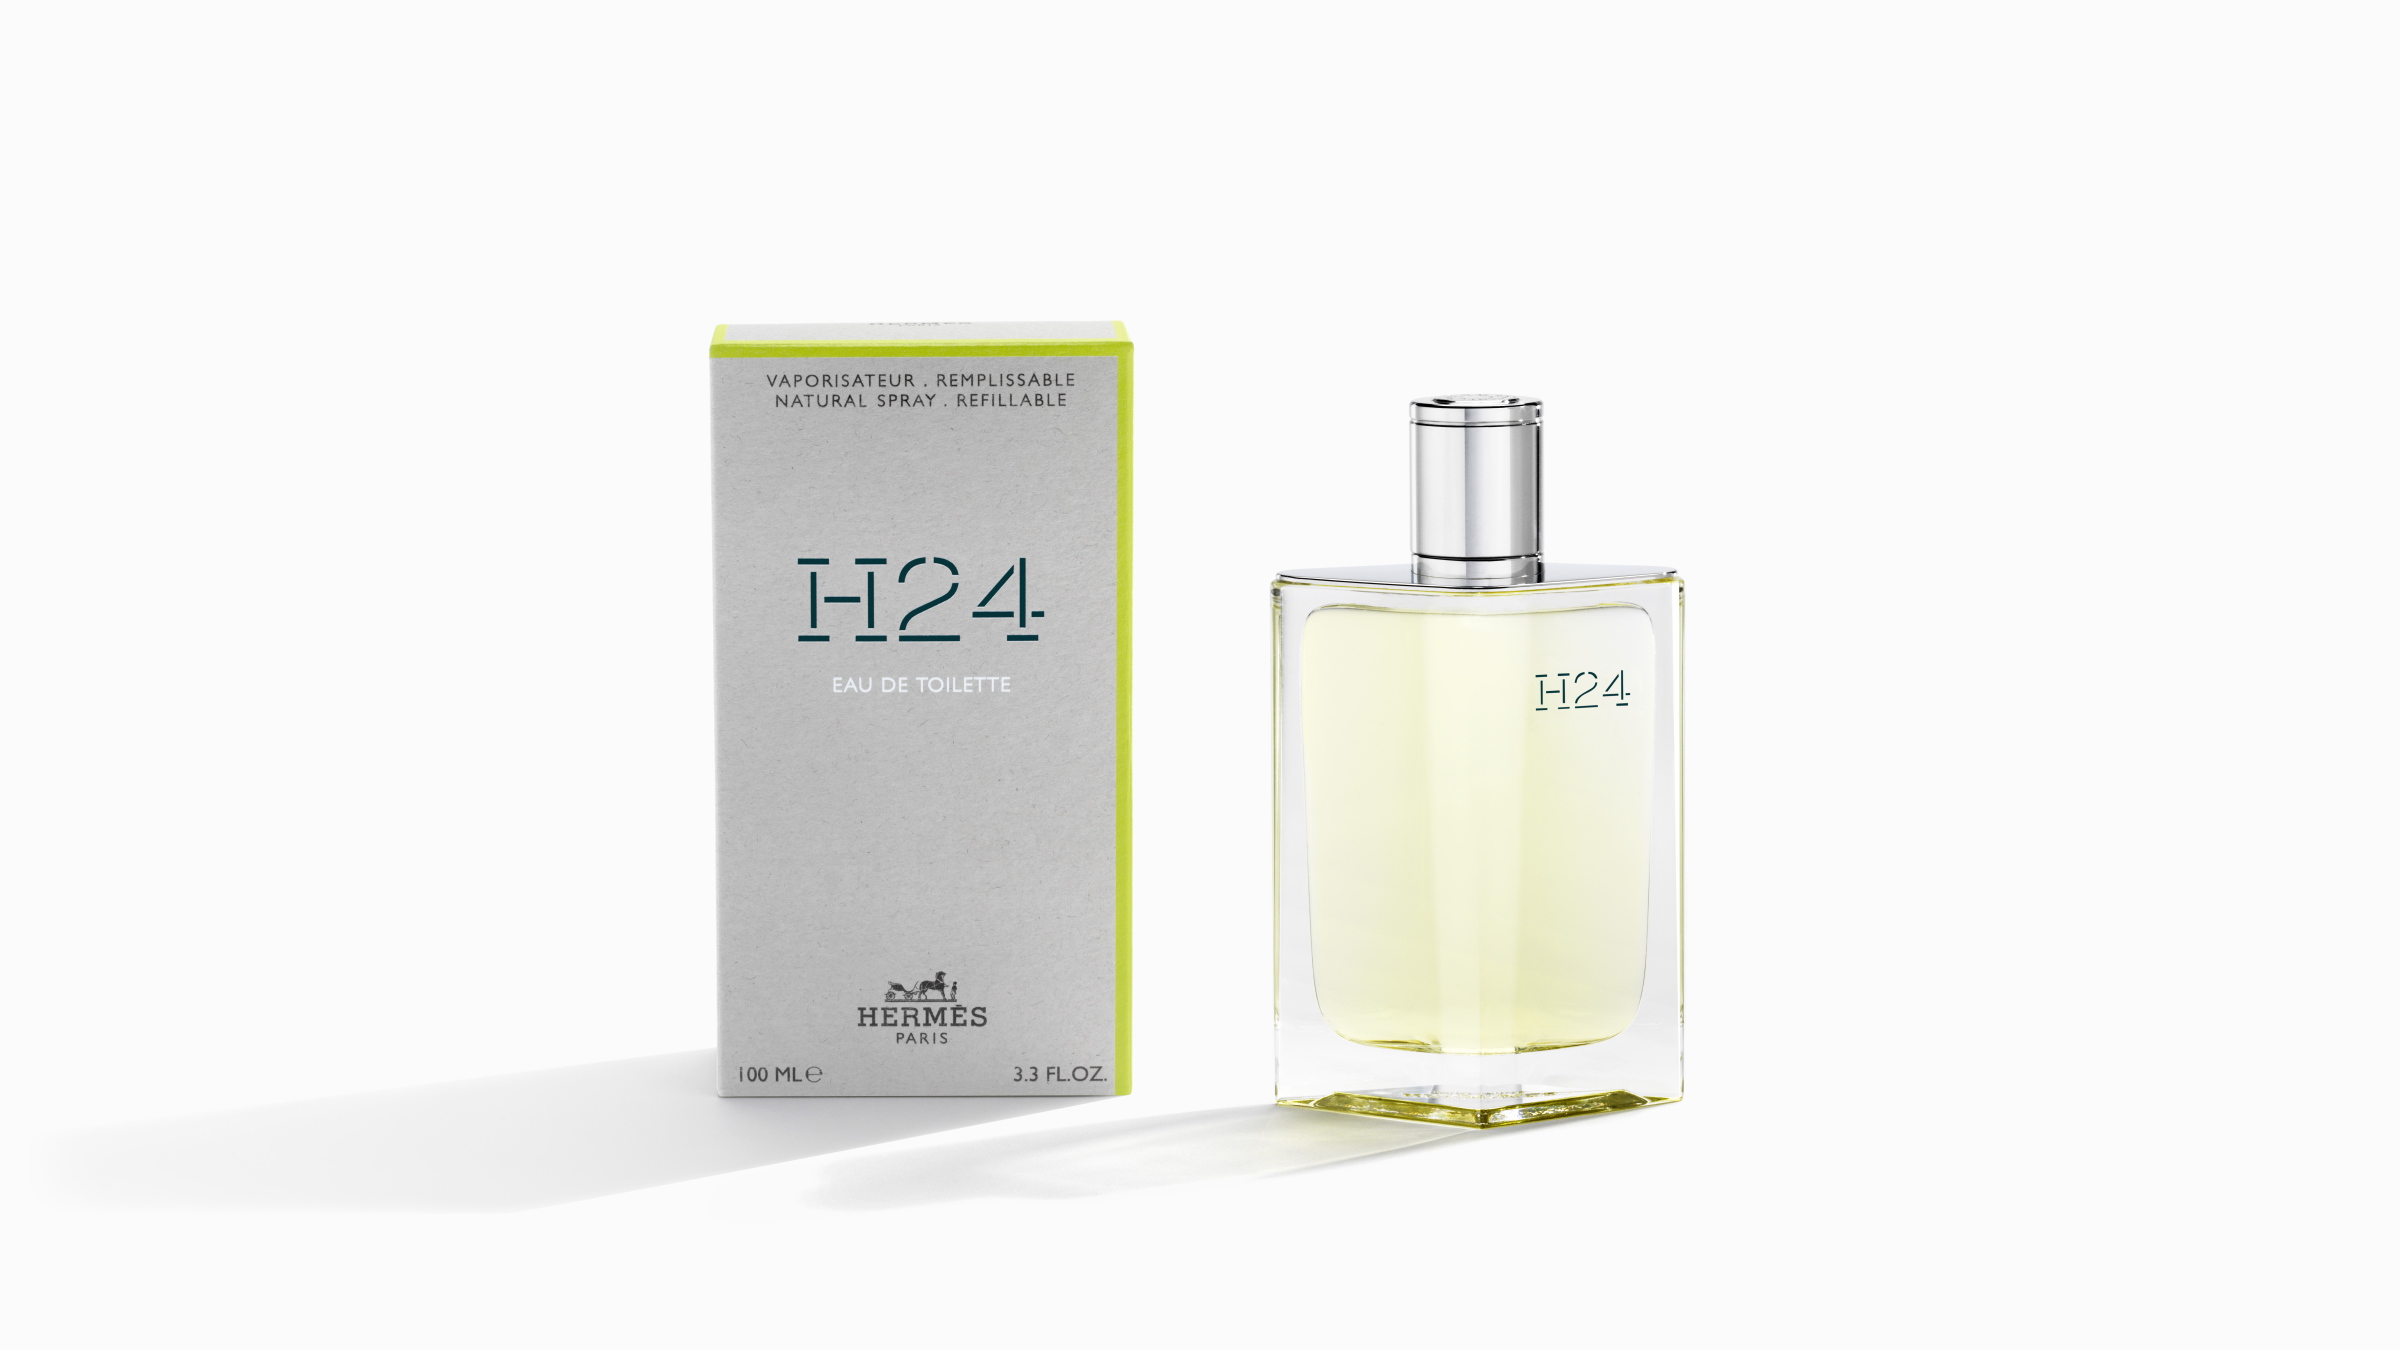 Hermès H24: A Fragrance Created Beyond A Conventional Approach